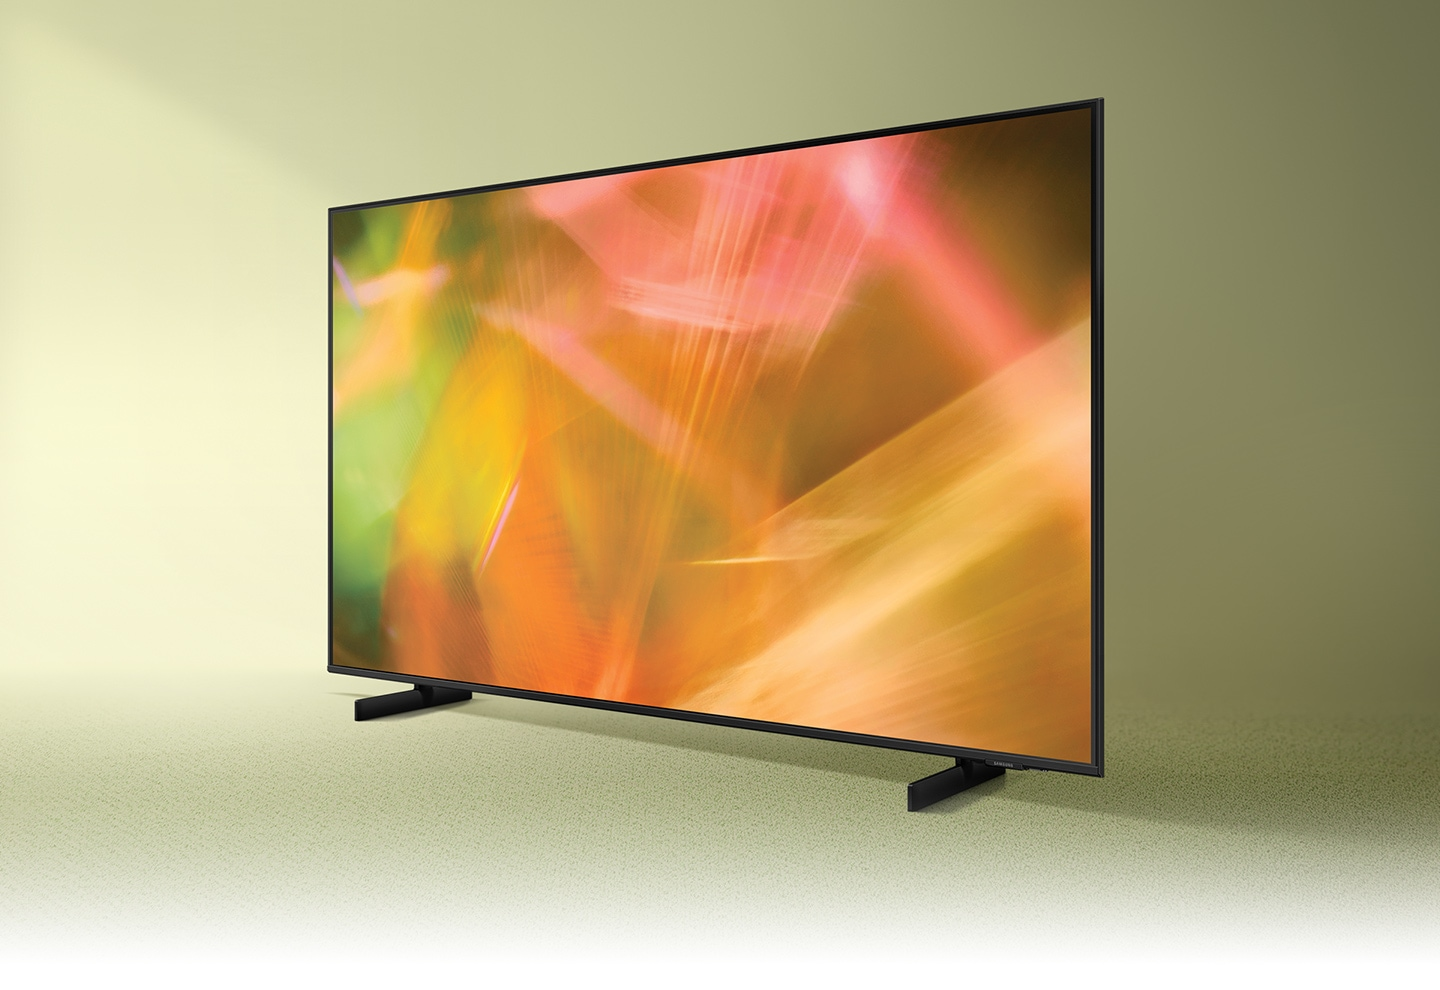 AU8000 displays intricately blended color graphics which demonstrate vivid crystal color.